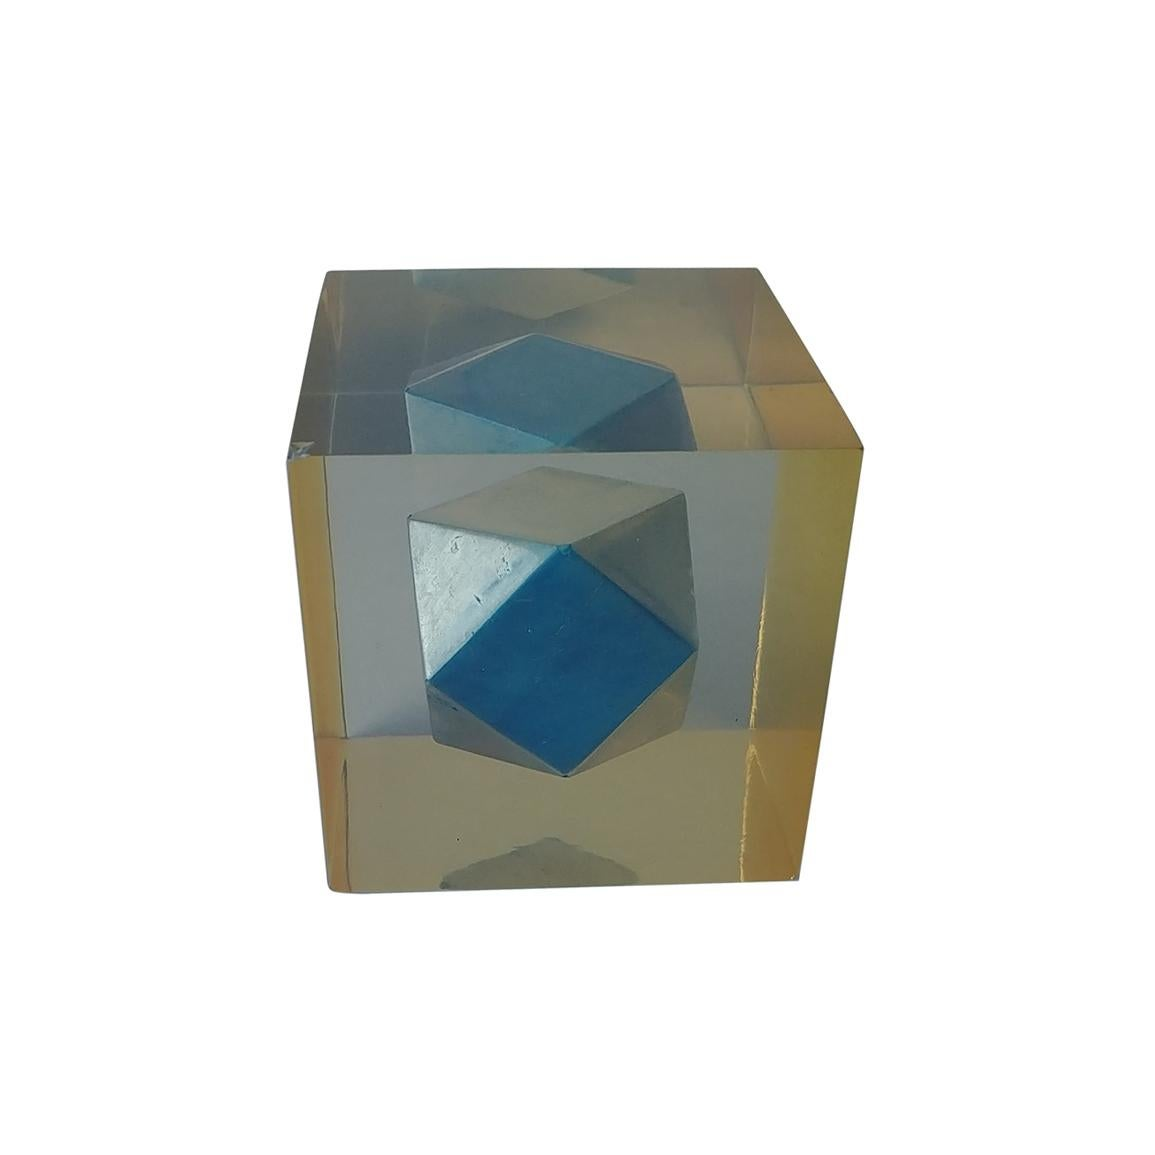 Enzo Mari, Rare Resin Cube, Sculpture, Paperweight, with Polyhedral Inside